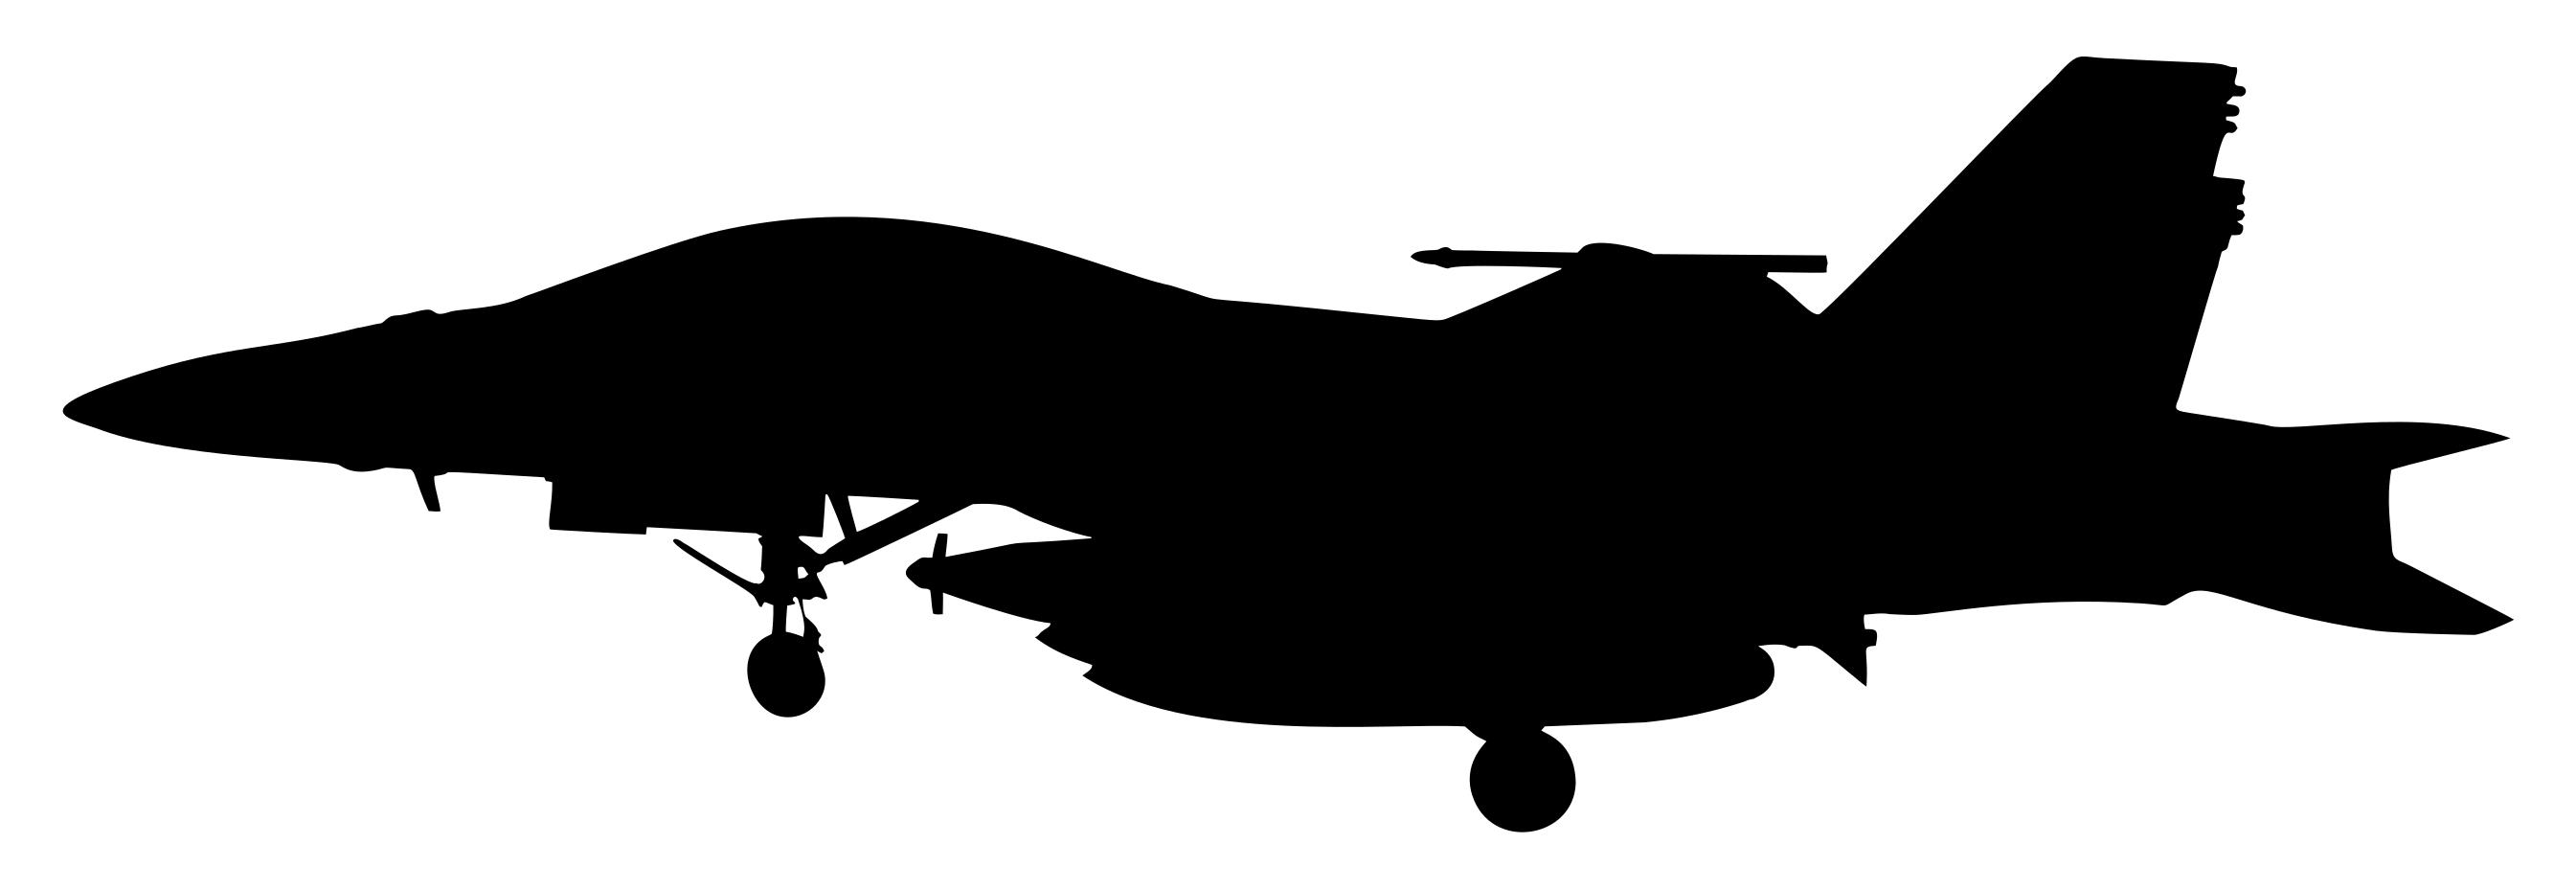 2690x928 Jet Fighter Silhouette Clipart